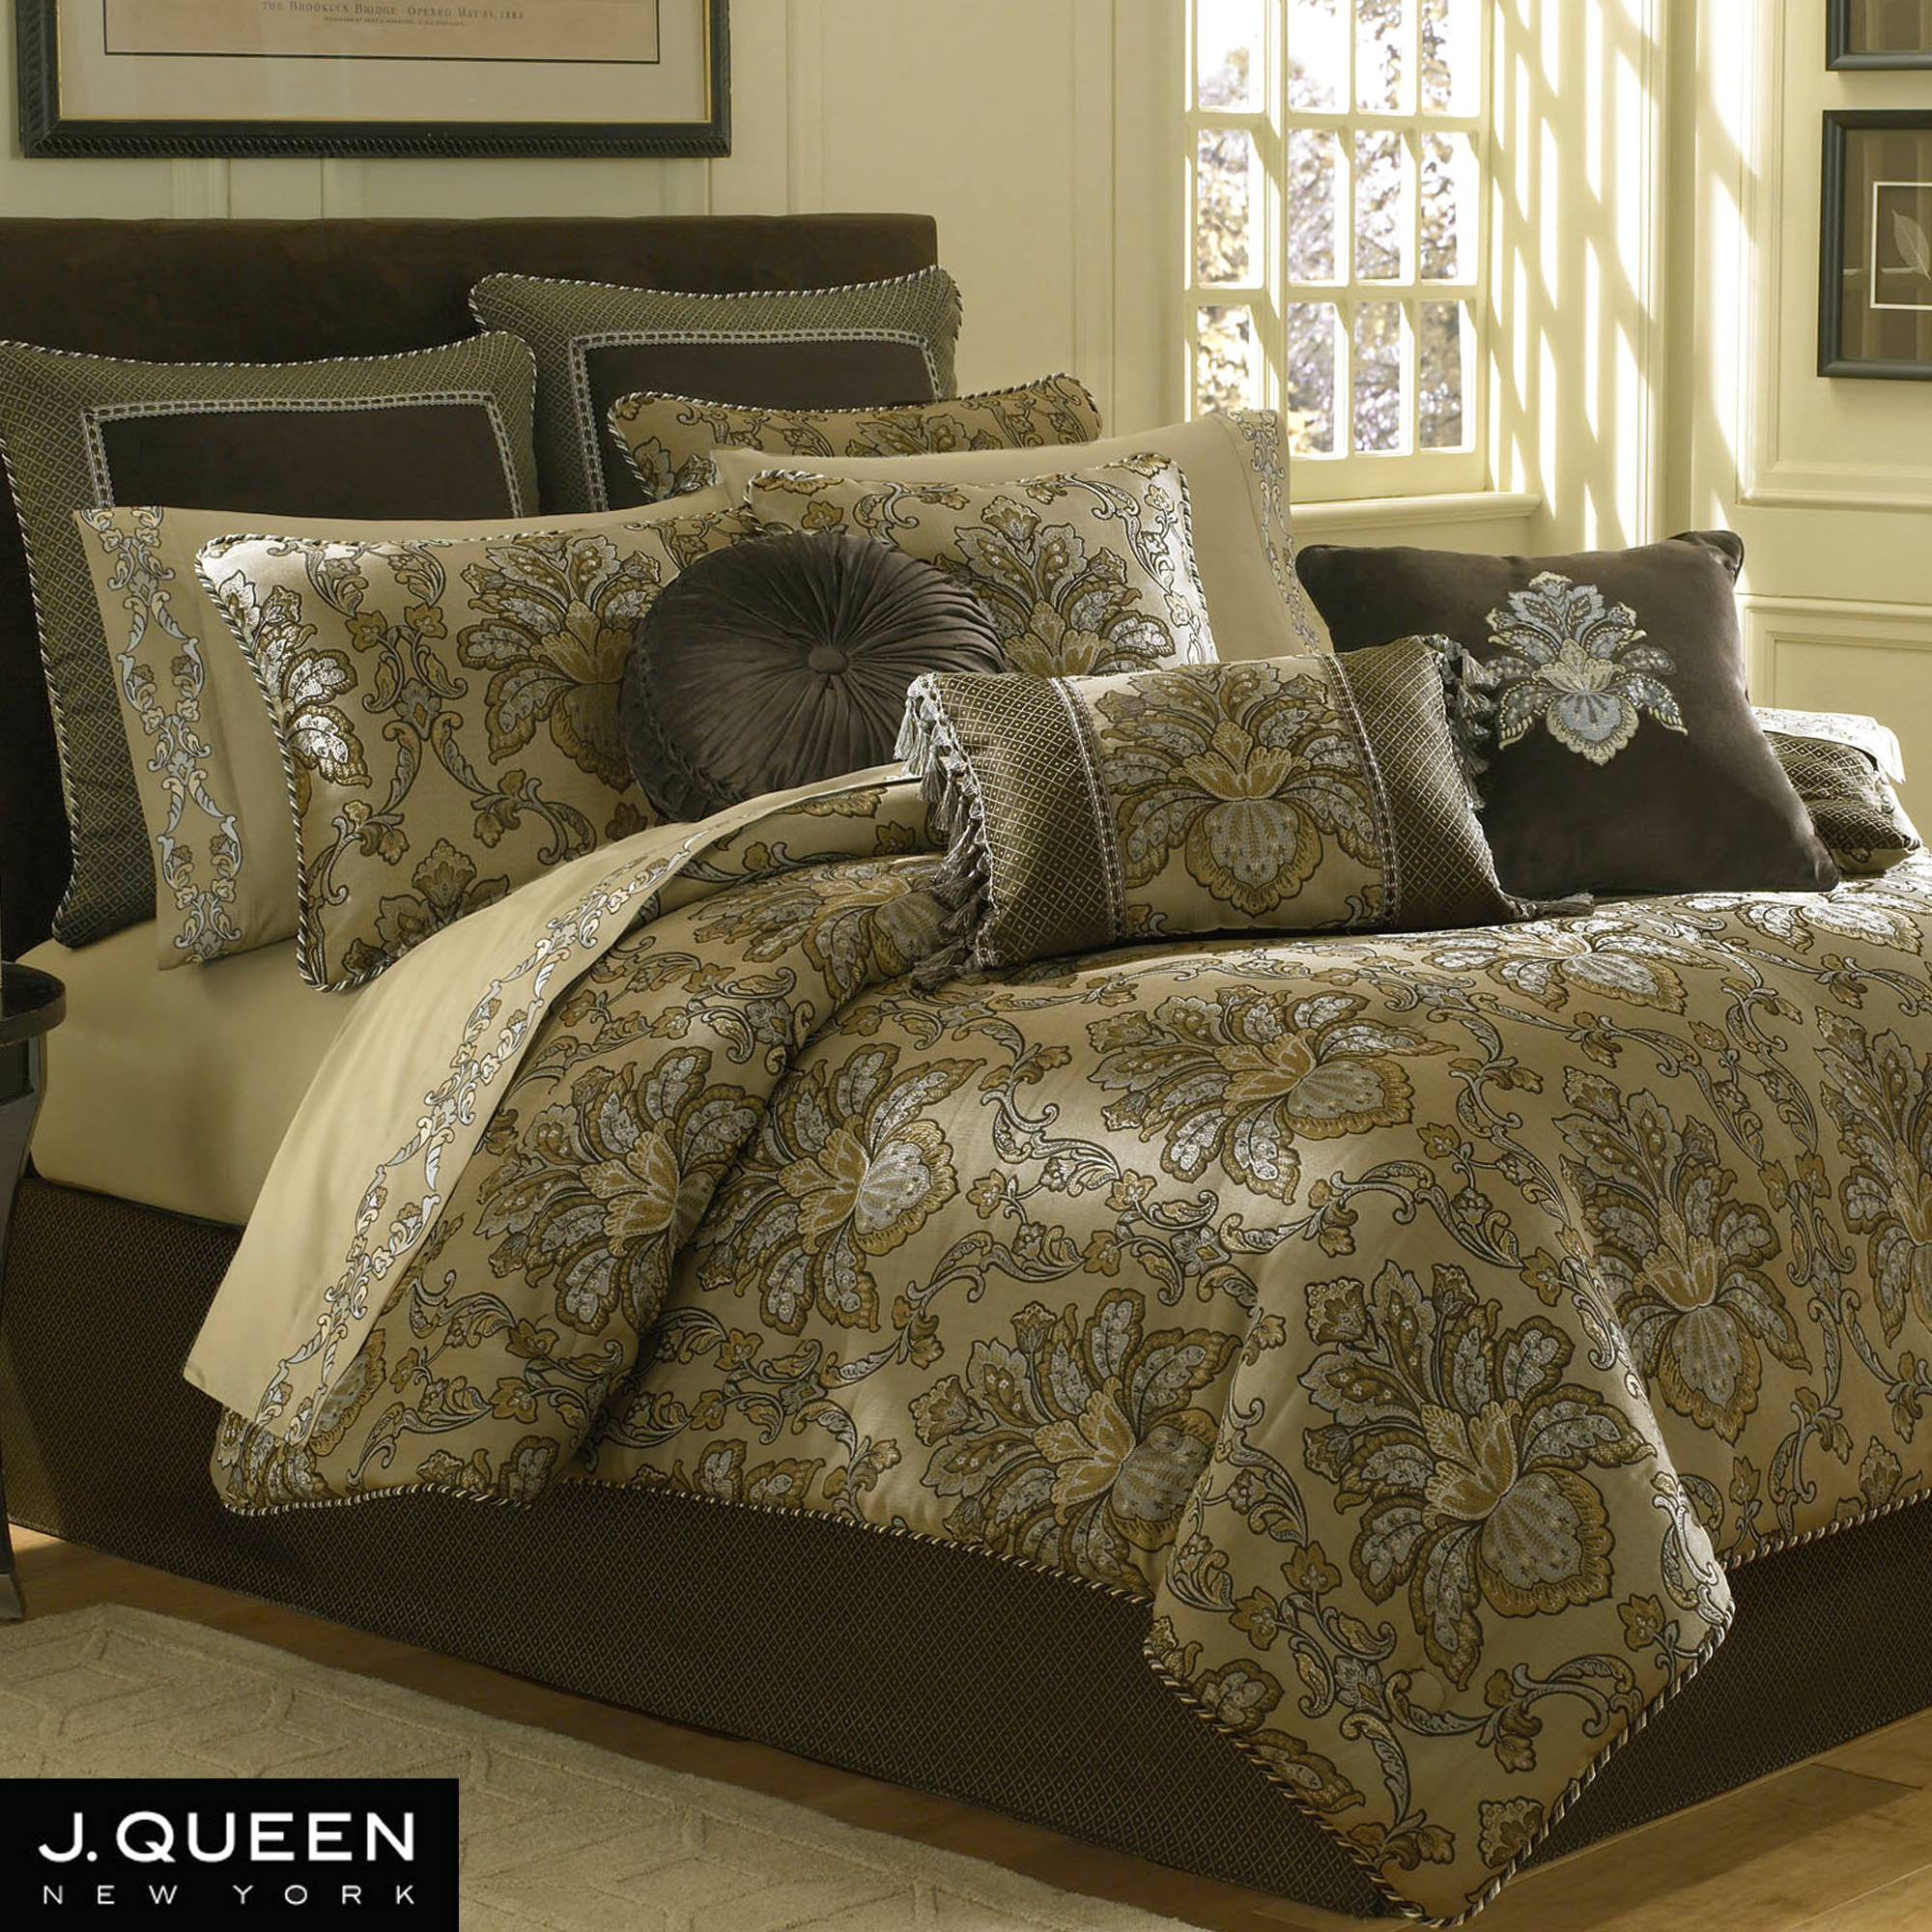 Fantastic damask bedding for bed decorating ideas with damask bedding set and damask crib bedding